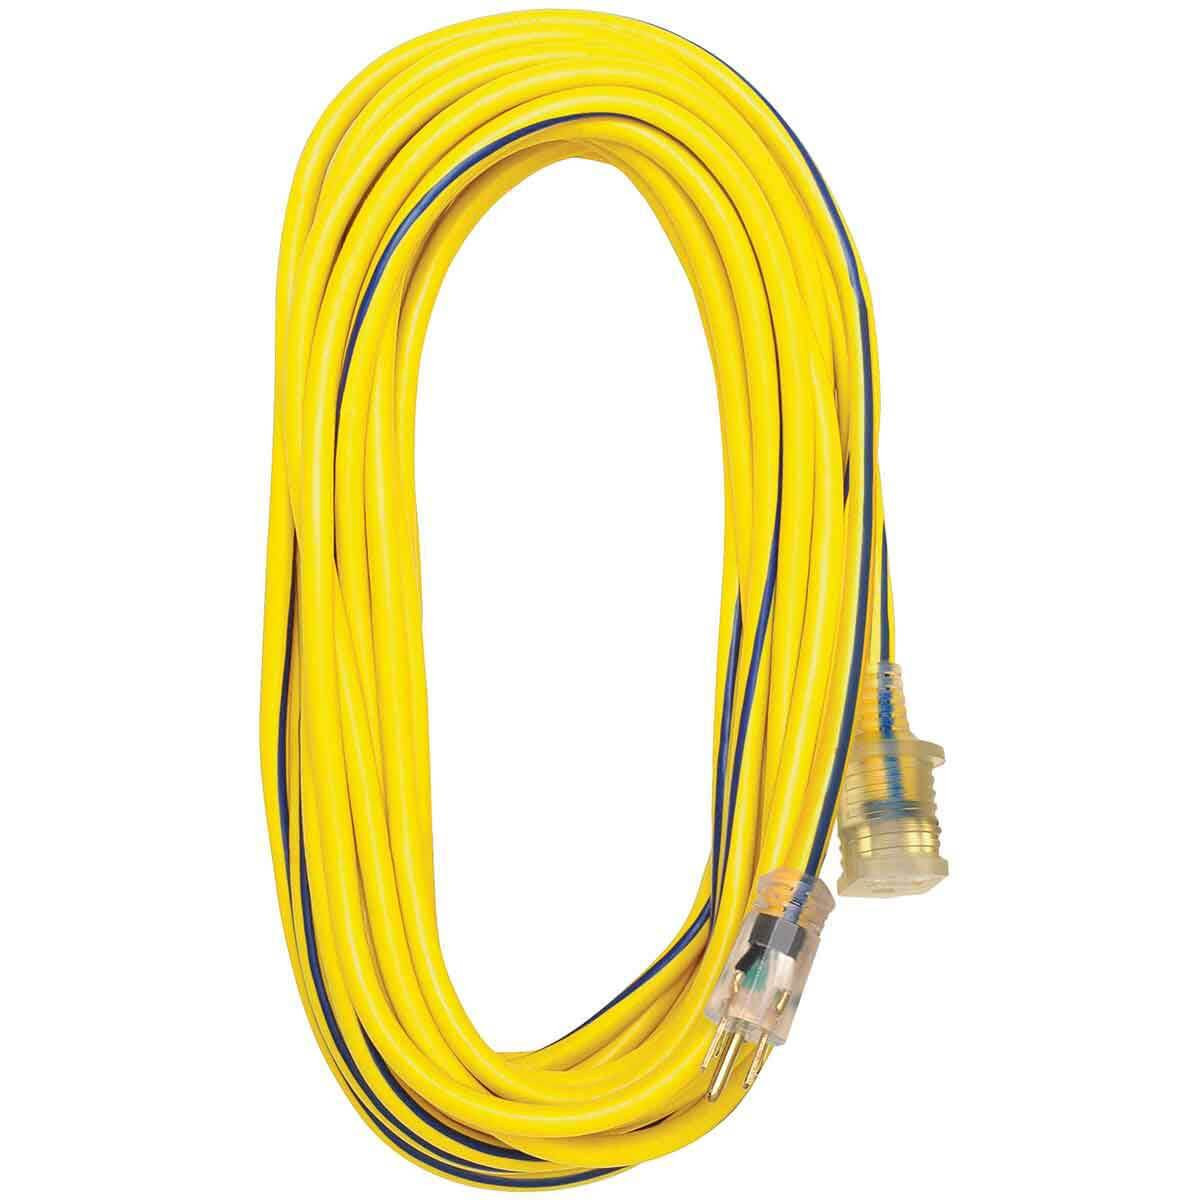 voltec 50ft extension cord sale